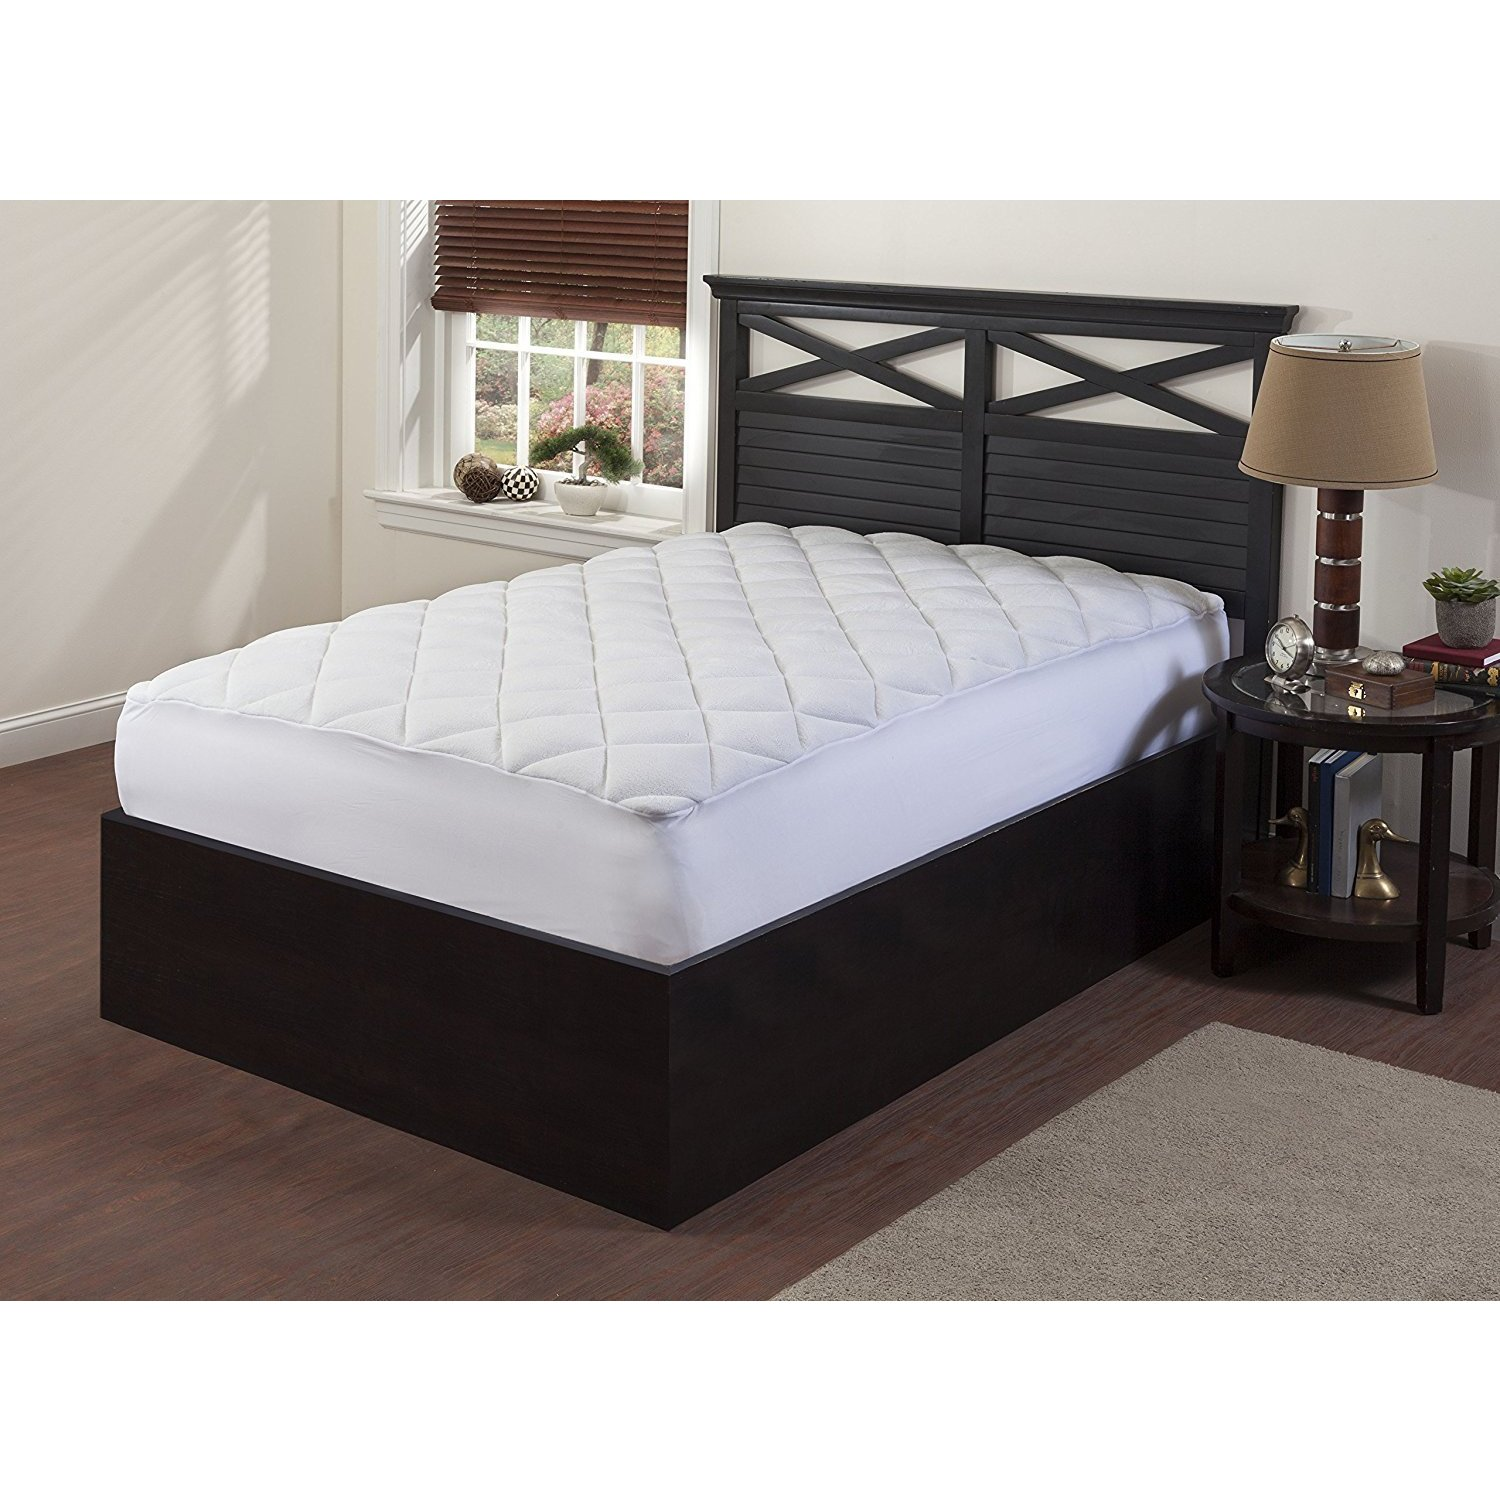 Royal Comfort, Double Puff Mattress Pad (Queen), Black ni...